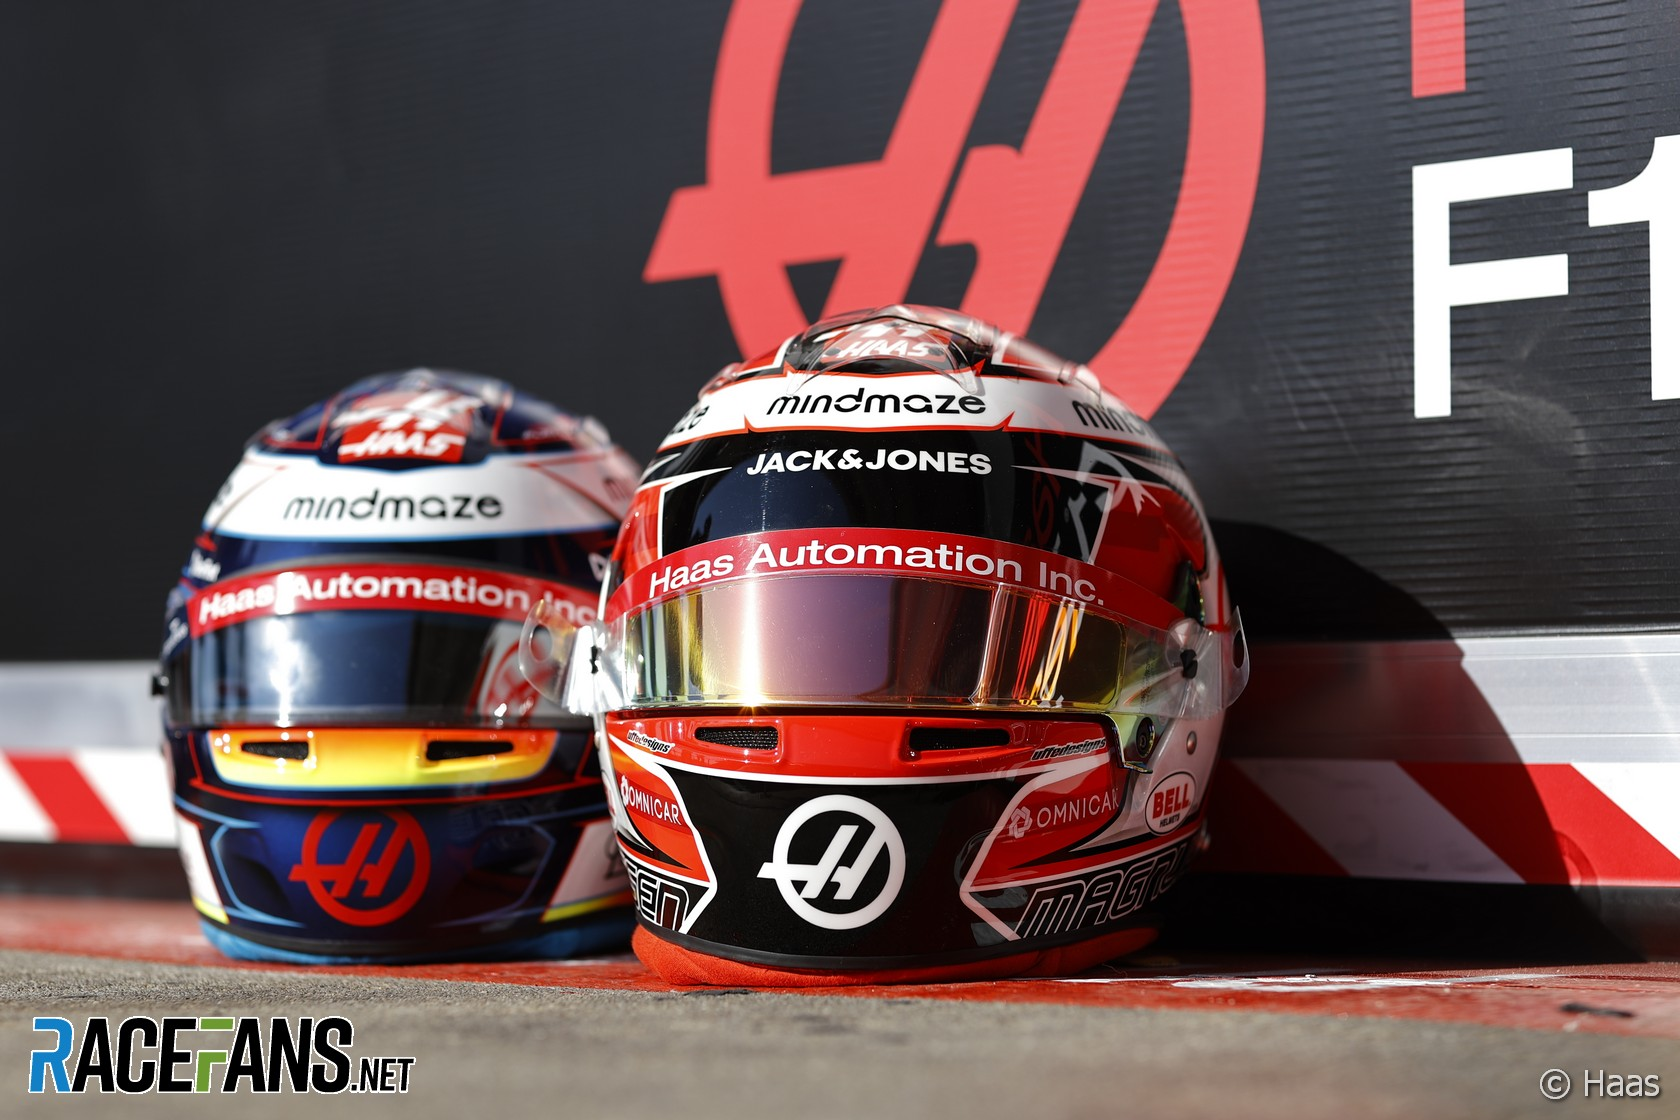 F1 Scraps Ban On Drivers Changing Helmet Designs Racefans